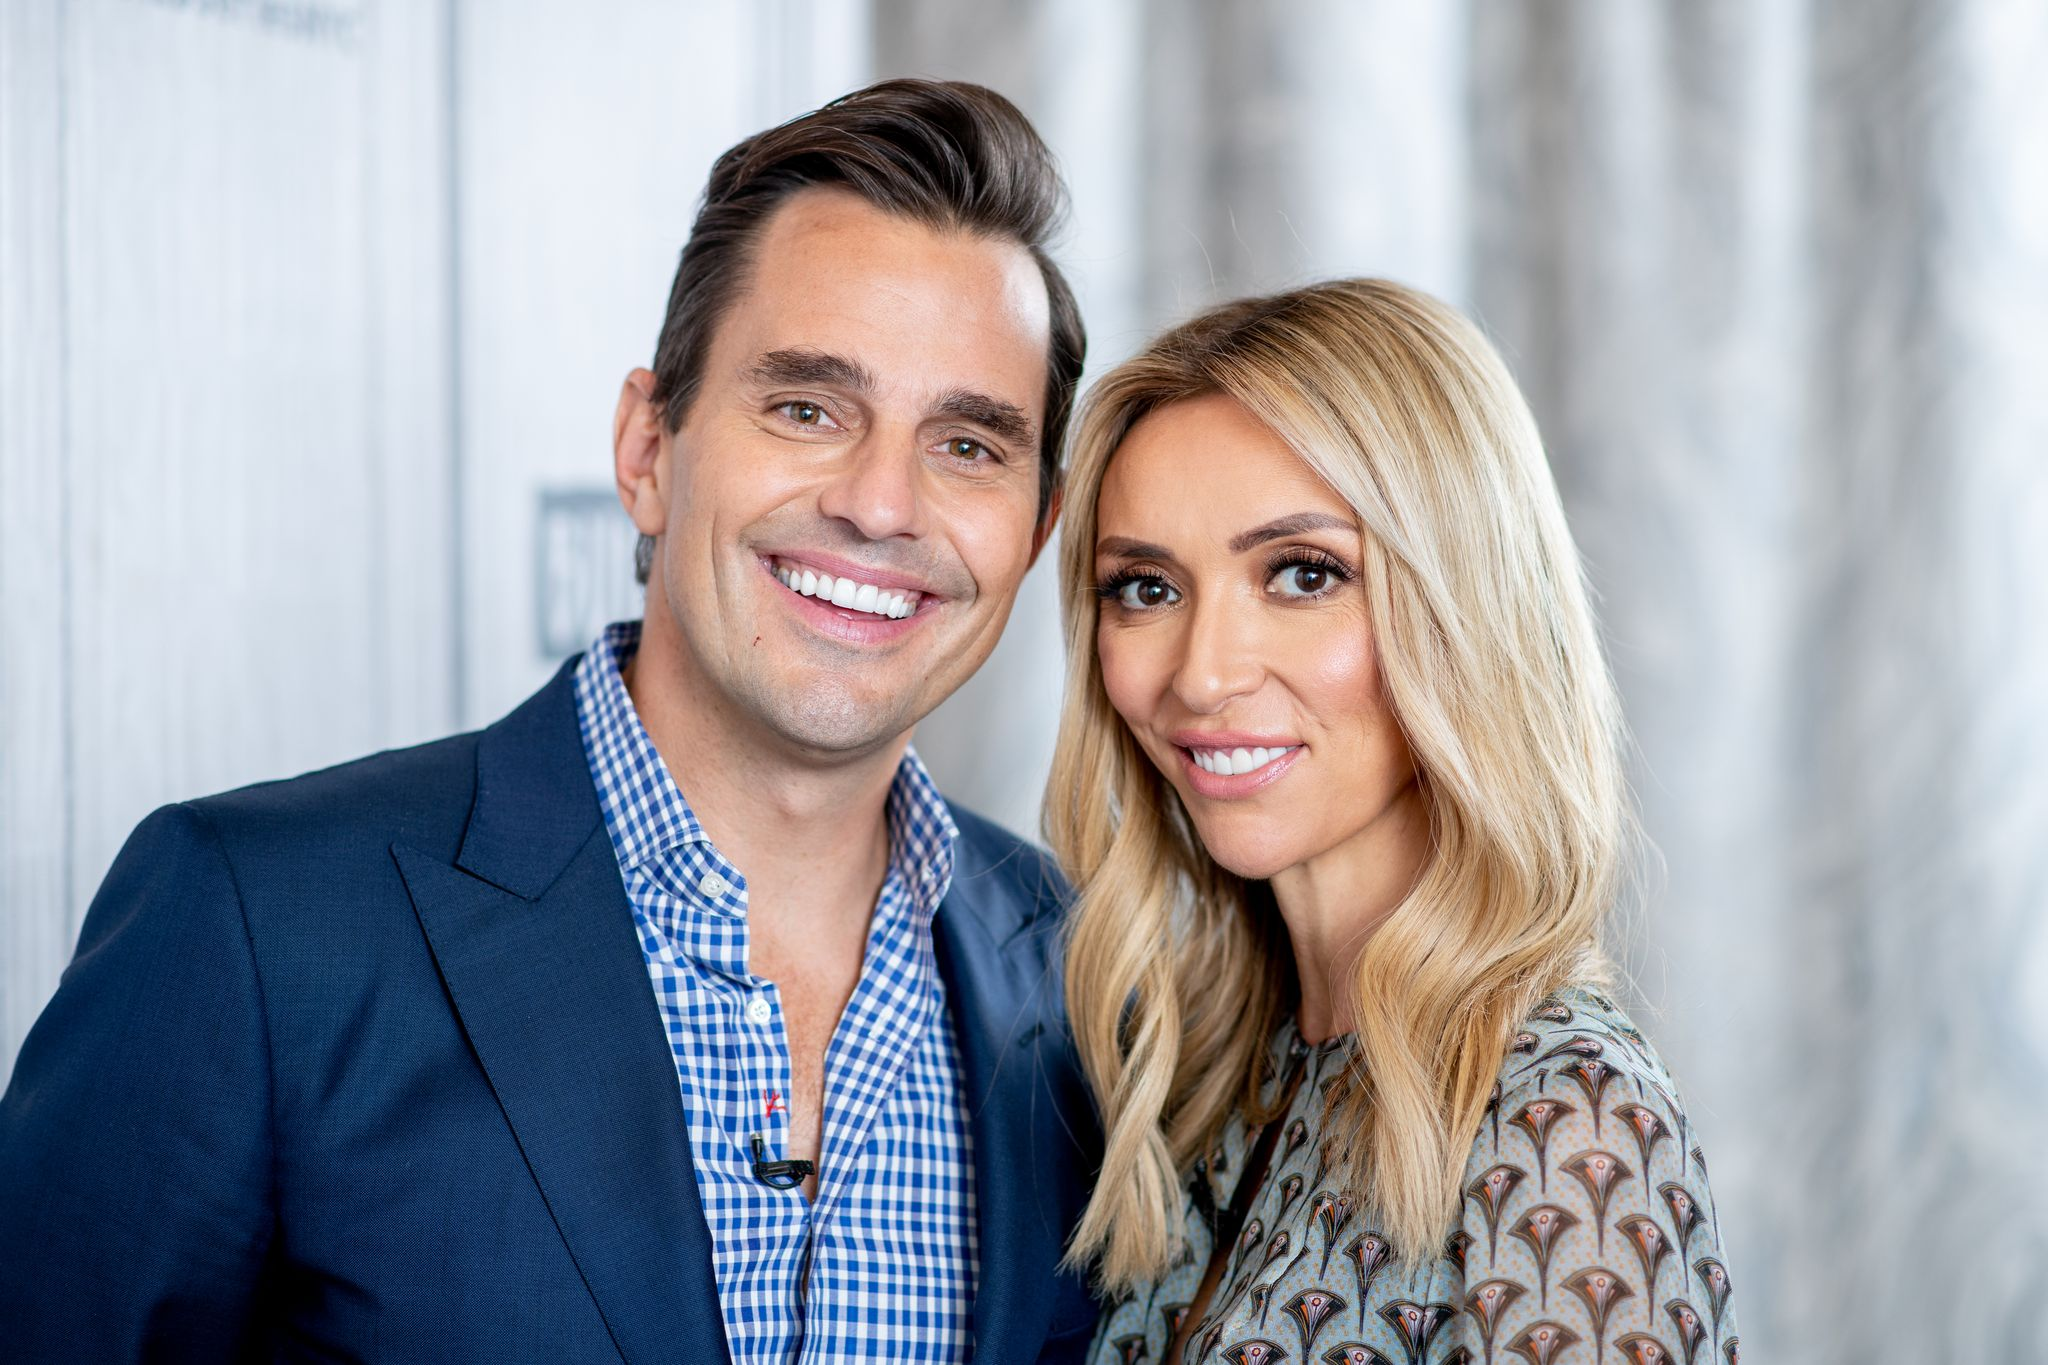 Bill Rancic and Giuliana Rancic at Build Studio in 2018 in New York City   Source: Getty Images